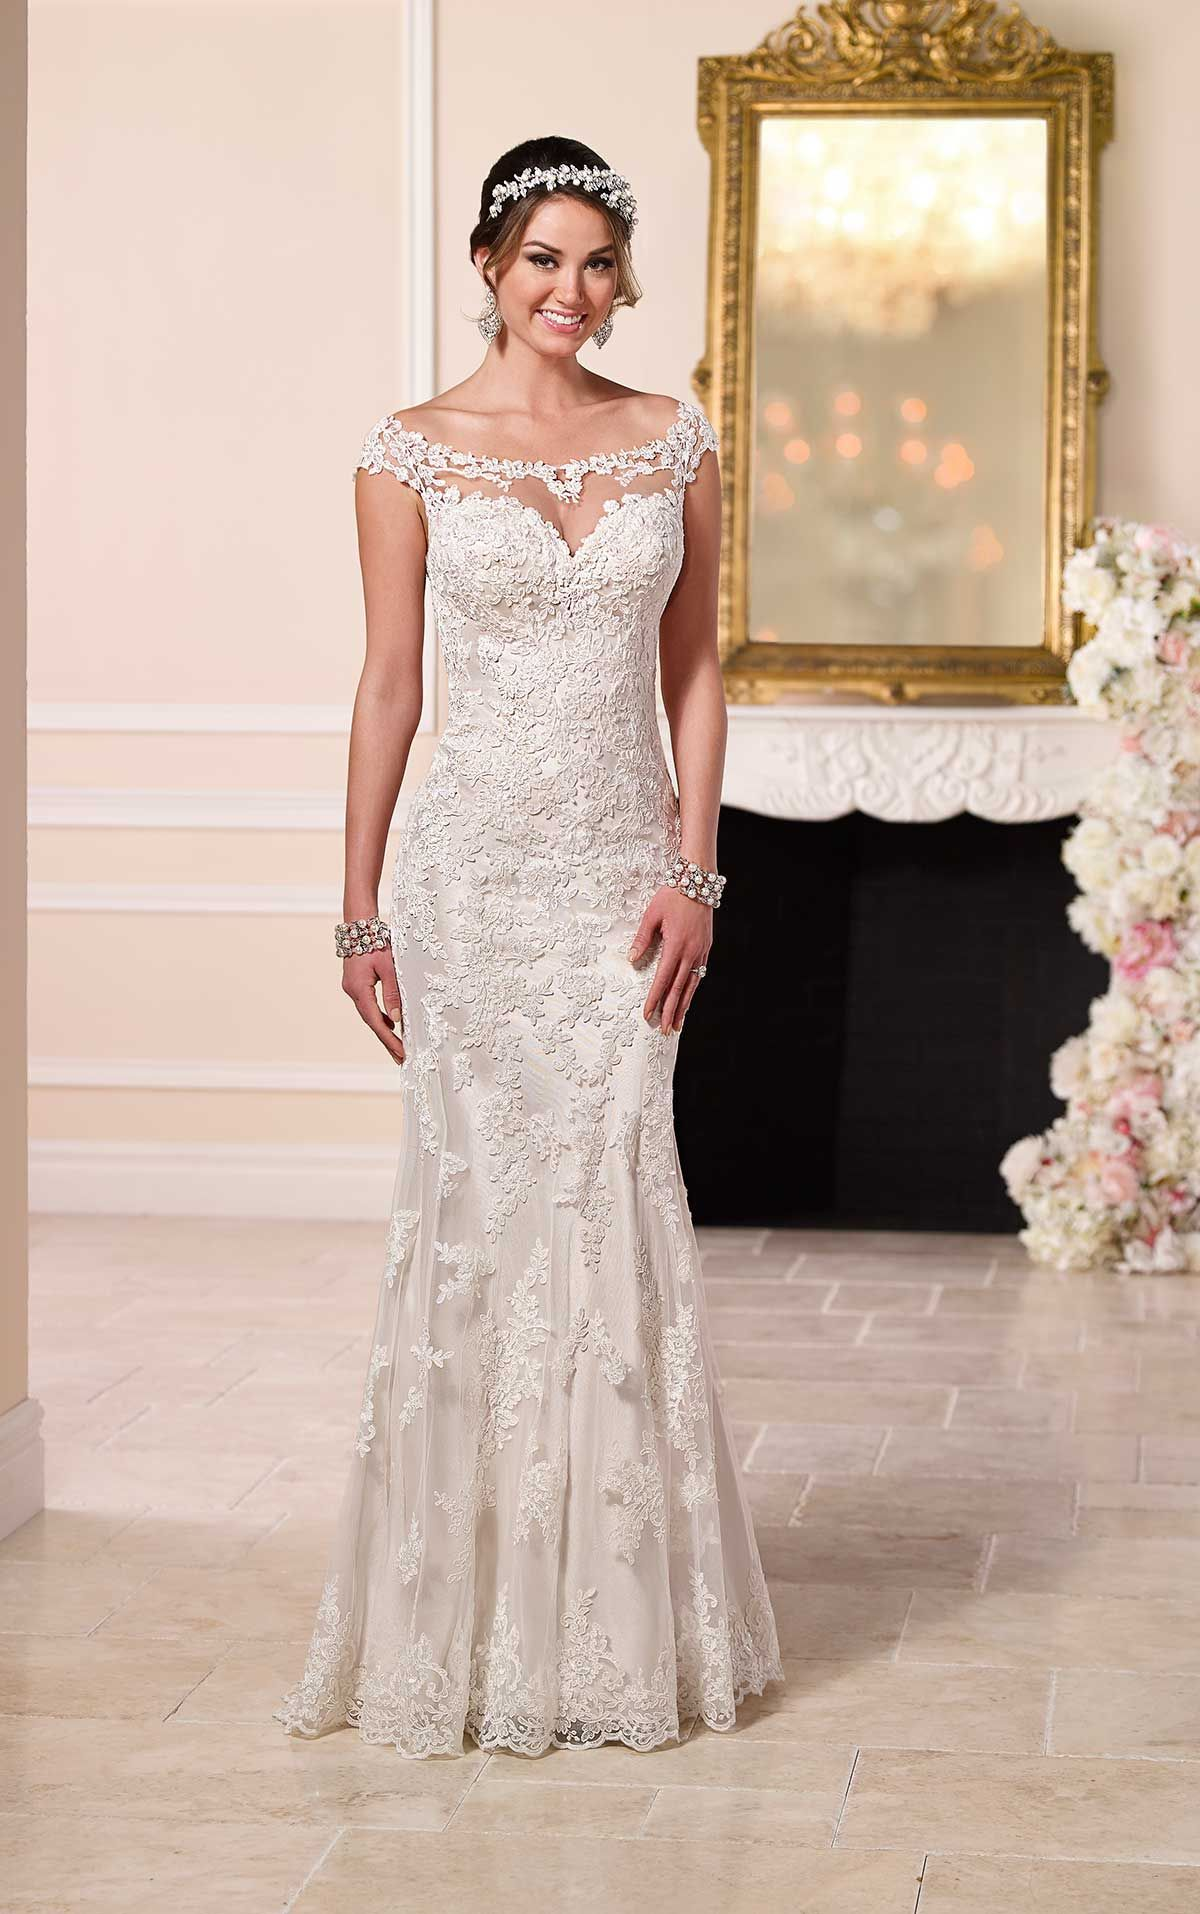 Elite wedding dresses  Affordable Wedding Dresses  Stella york bridal Stella york and